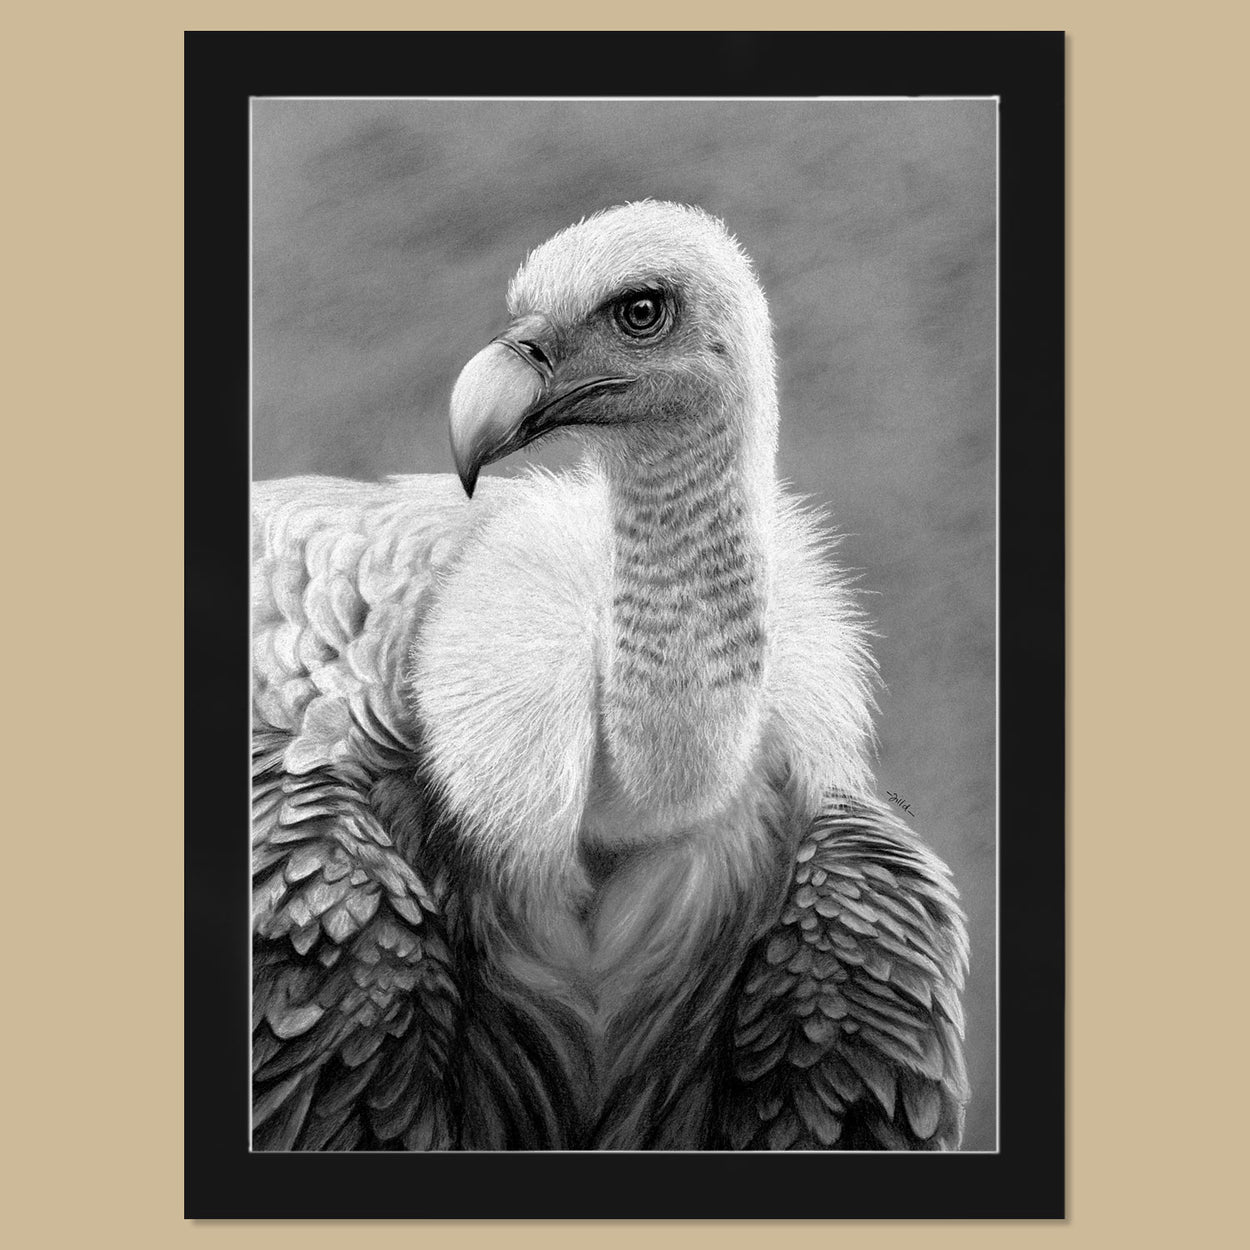 Original Griffon Vulture Charcoal Drawing - Gyps Fulvus - The Thriving Wild - Jill Dimond